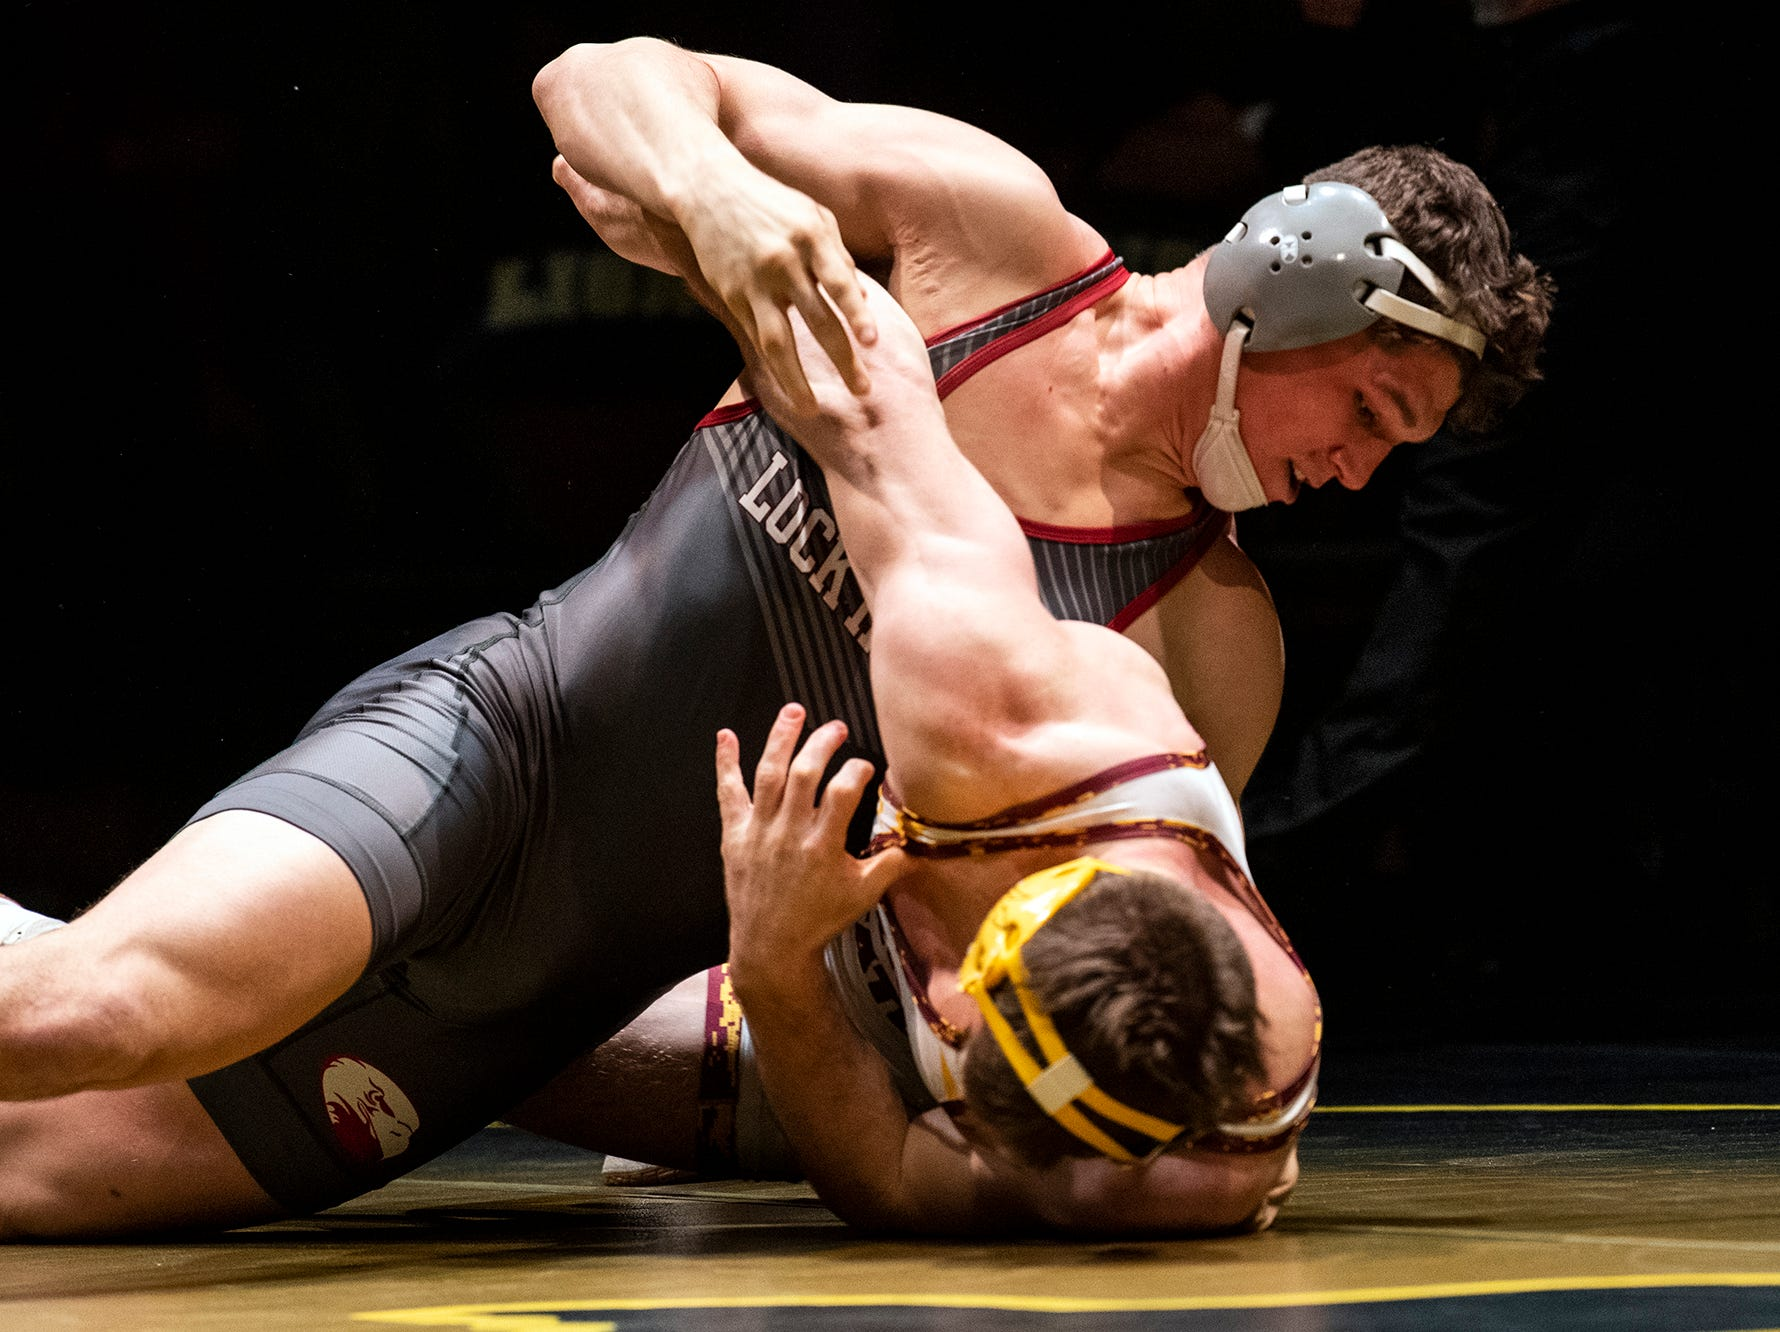 Lock Haven's Parker McClellan, top, works to turn Arizona State's Austyn Harris to his back during the 197-pound bout at Red Lion's Fitzkee Athletic Center on Friday, Jan. 25, 2019. McClellan beat Harris, 2-1, as No. 22 Lock Haven upset No. 12 Arizona State, 23-14, in the first ever 'Rumble in the Jungle.'